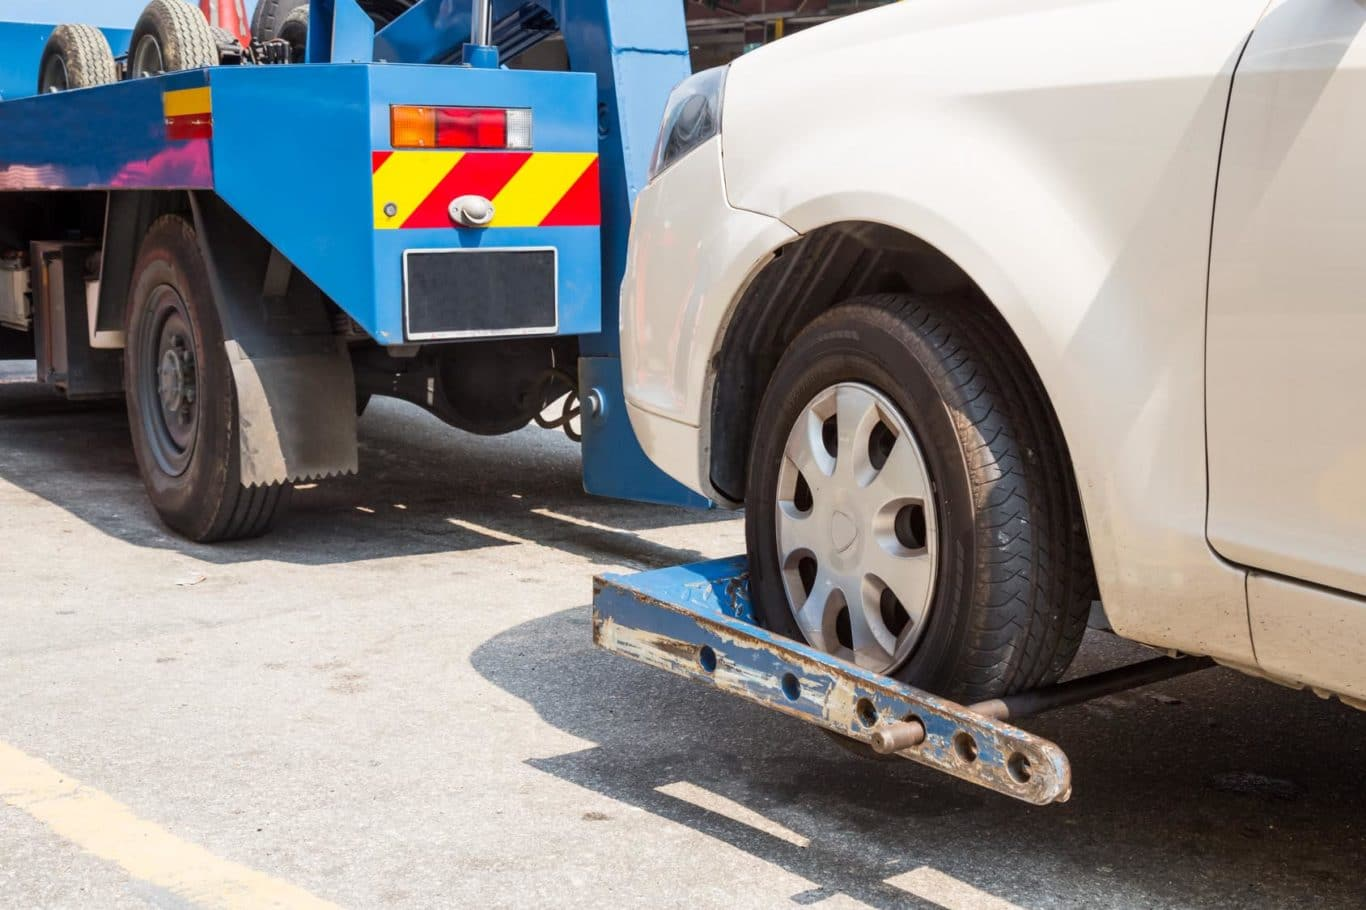 Dublin 17 (D17) Dublin, Fingal expert Towing And Recovery Dublin services